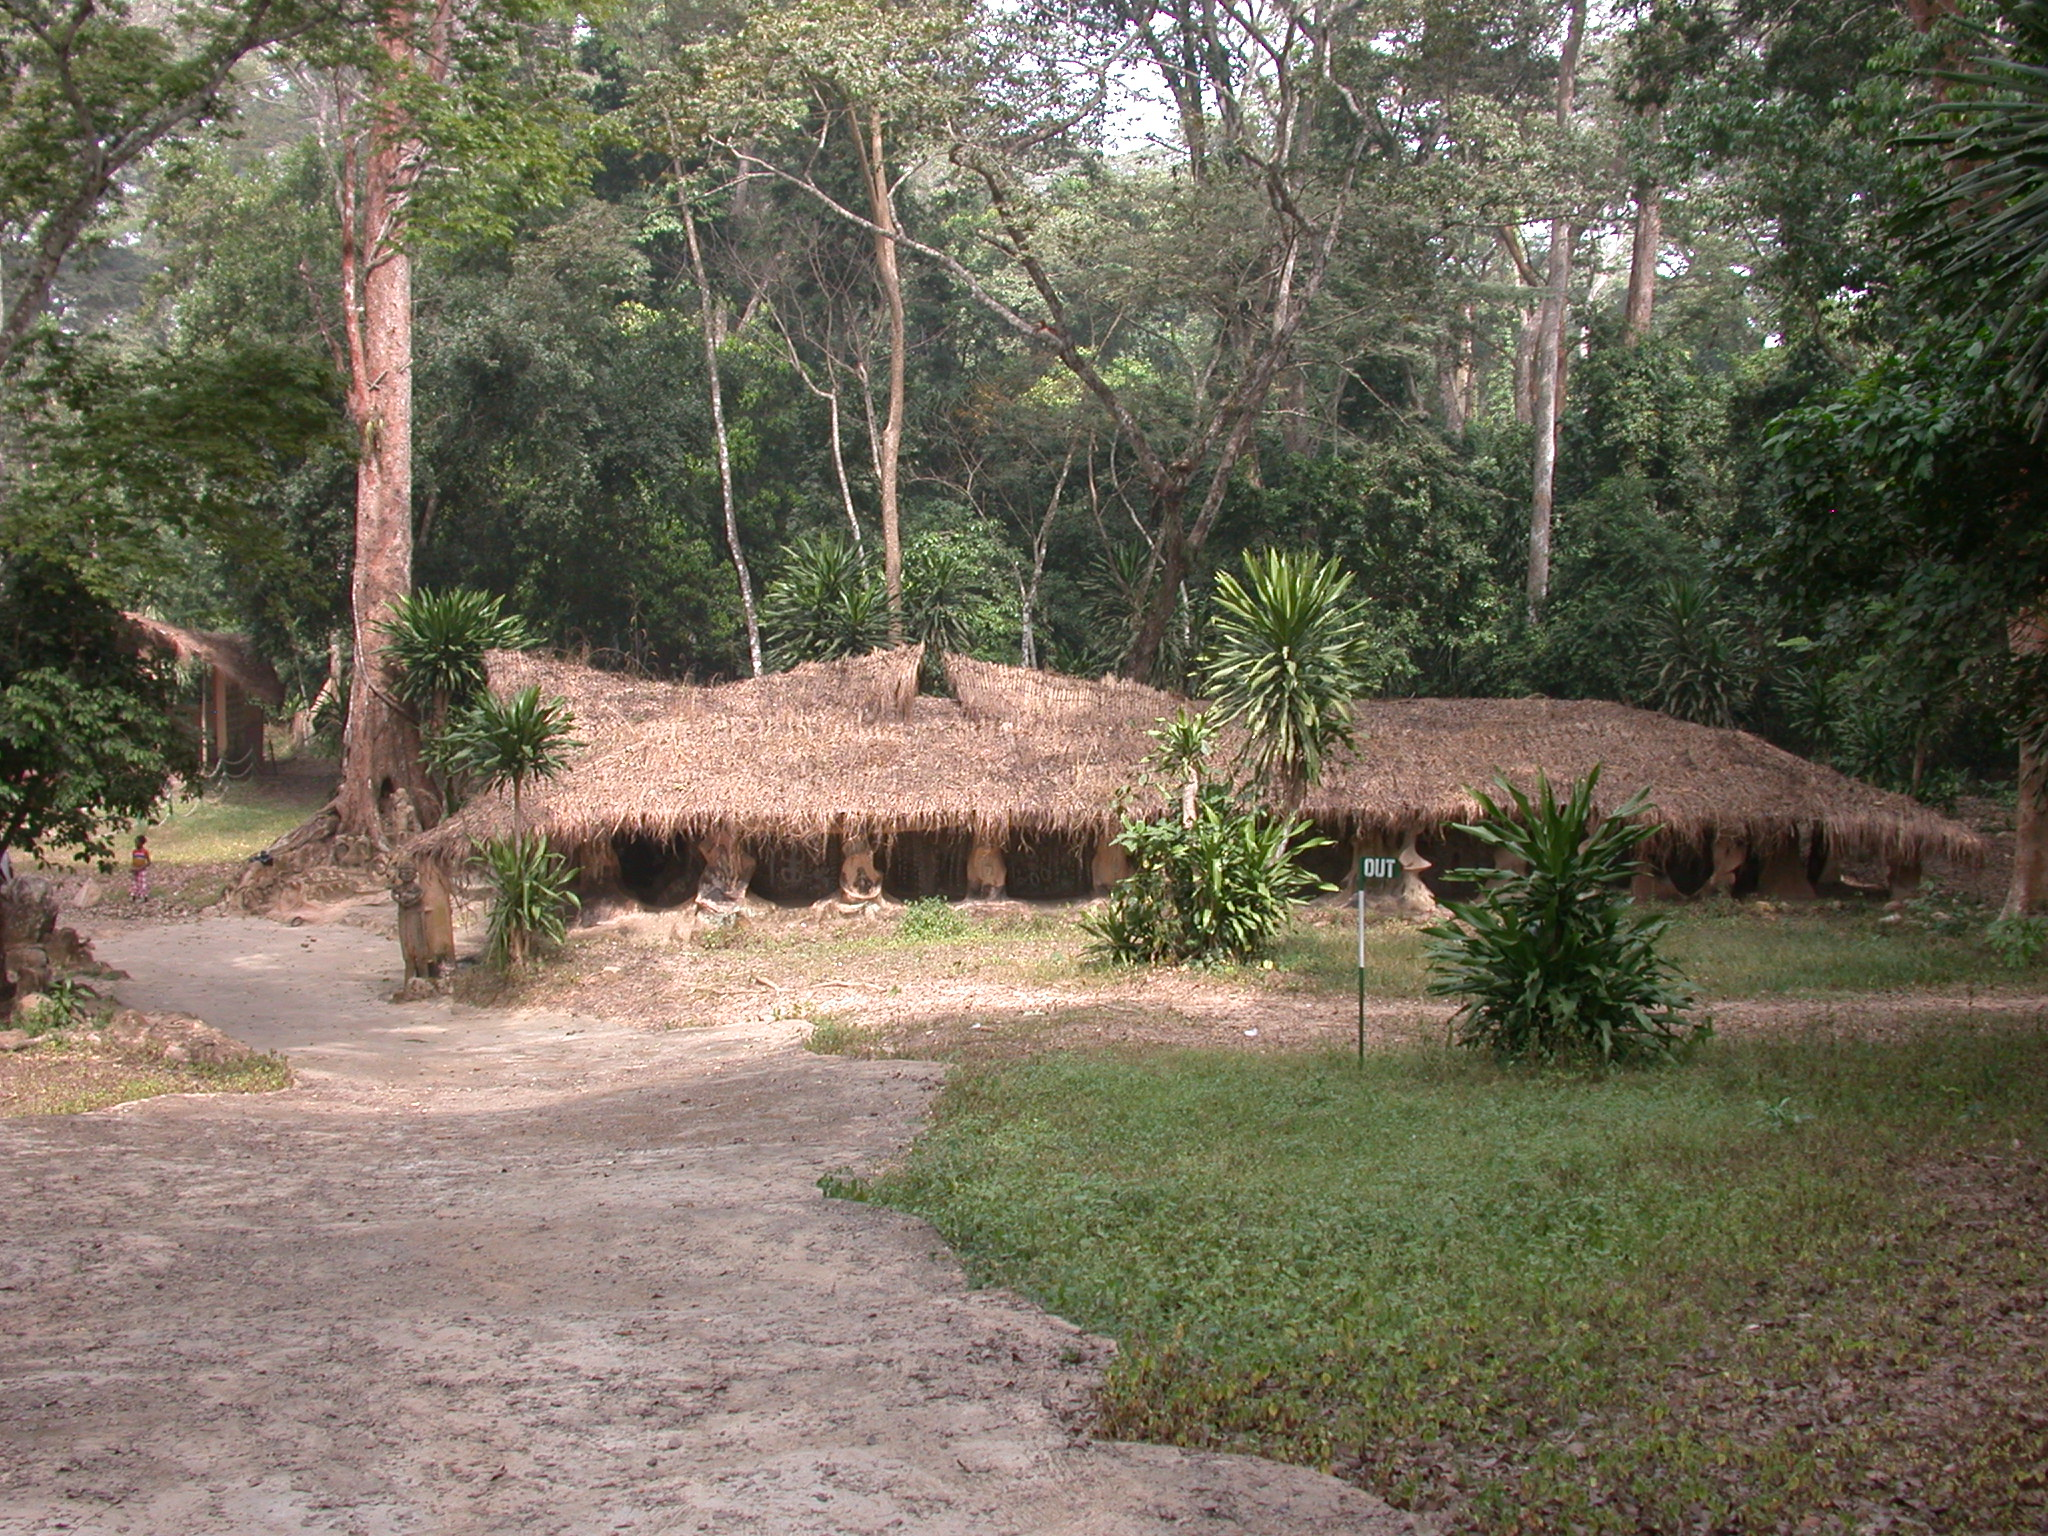 Thatched Ceremonial Home, Osun Sacred Grove, Oshogbo, Nigeria